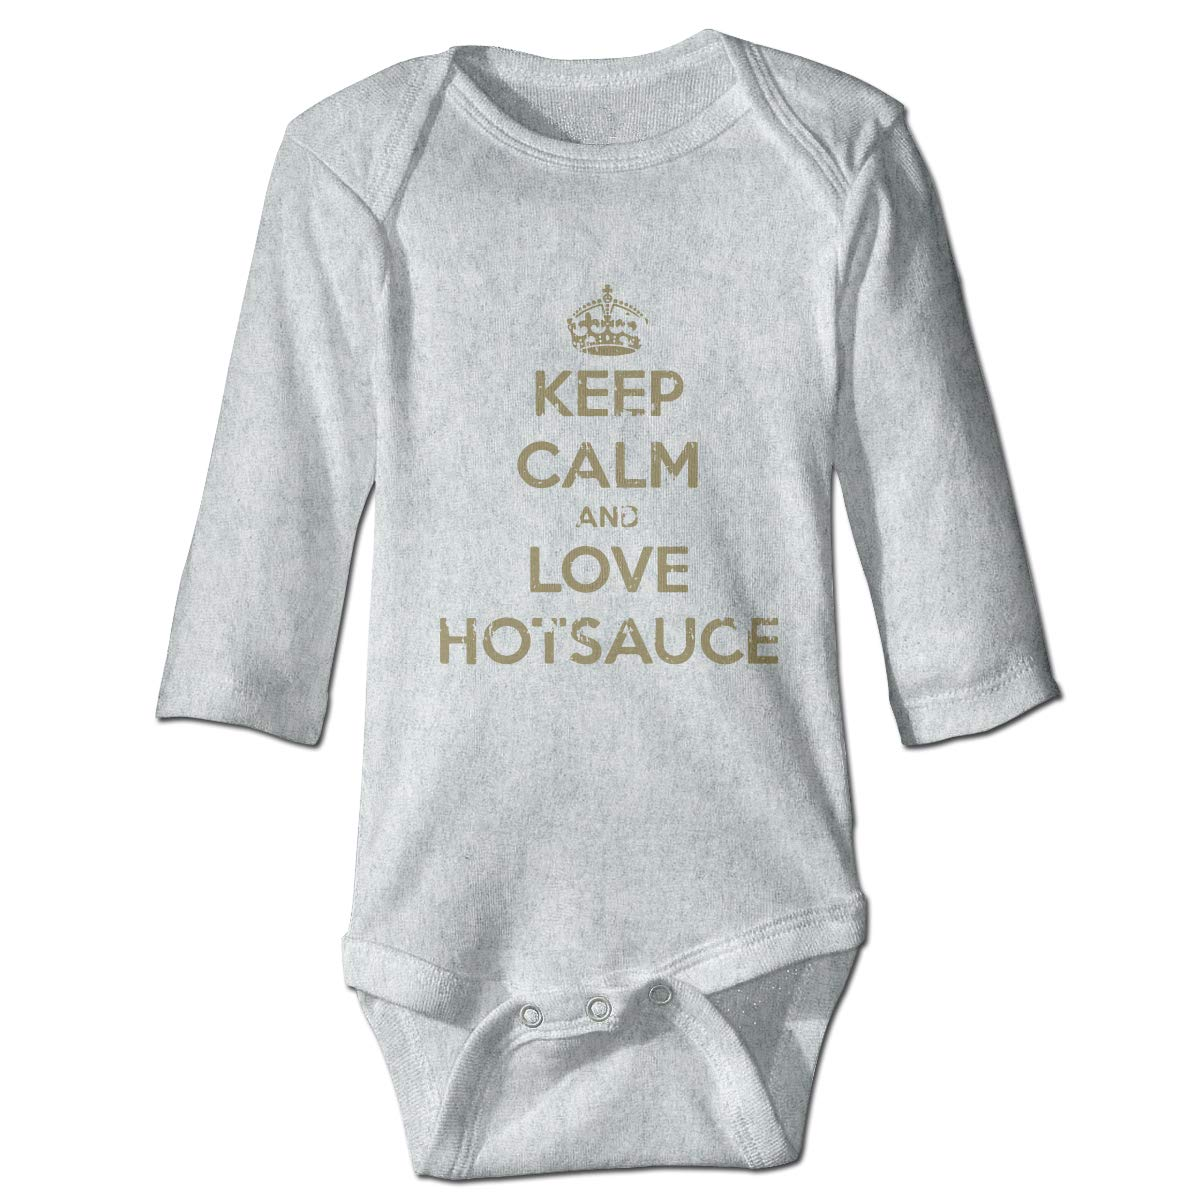 XHX Babys Keep Calm and Love HOT Sauce Long Sleeve Romper Onesie Bodysuit Jumpsuit